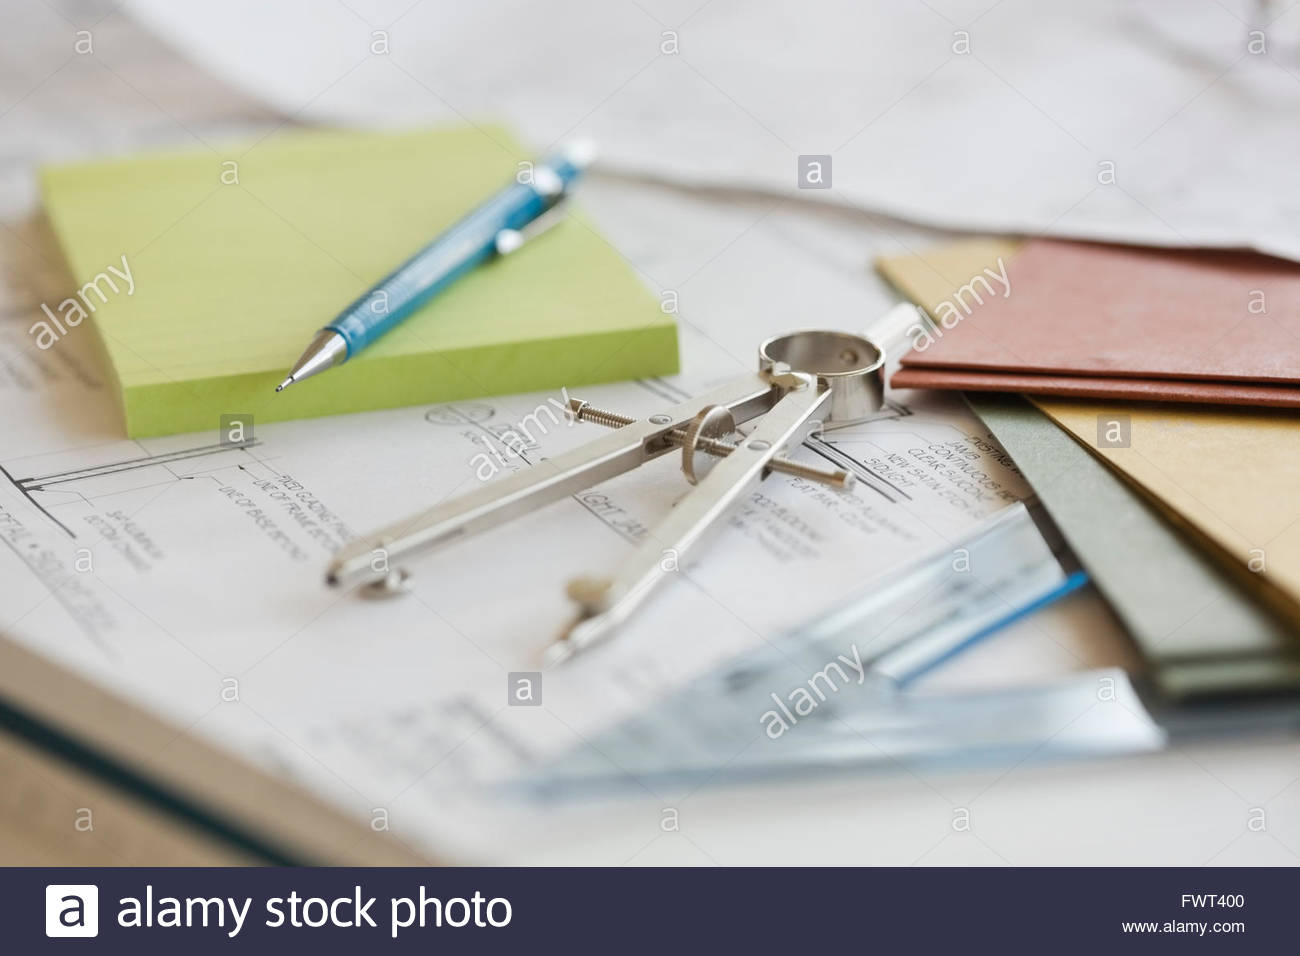 Geometry Compass and Blueprints - Stock Image